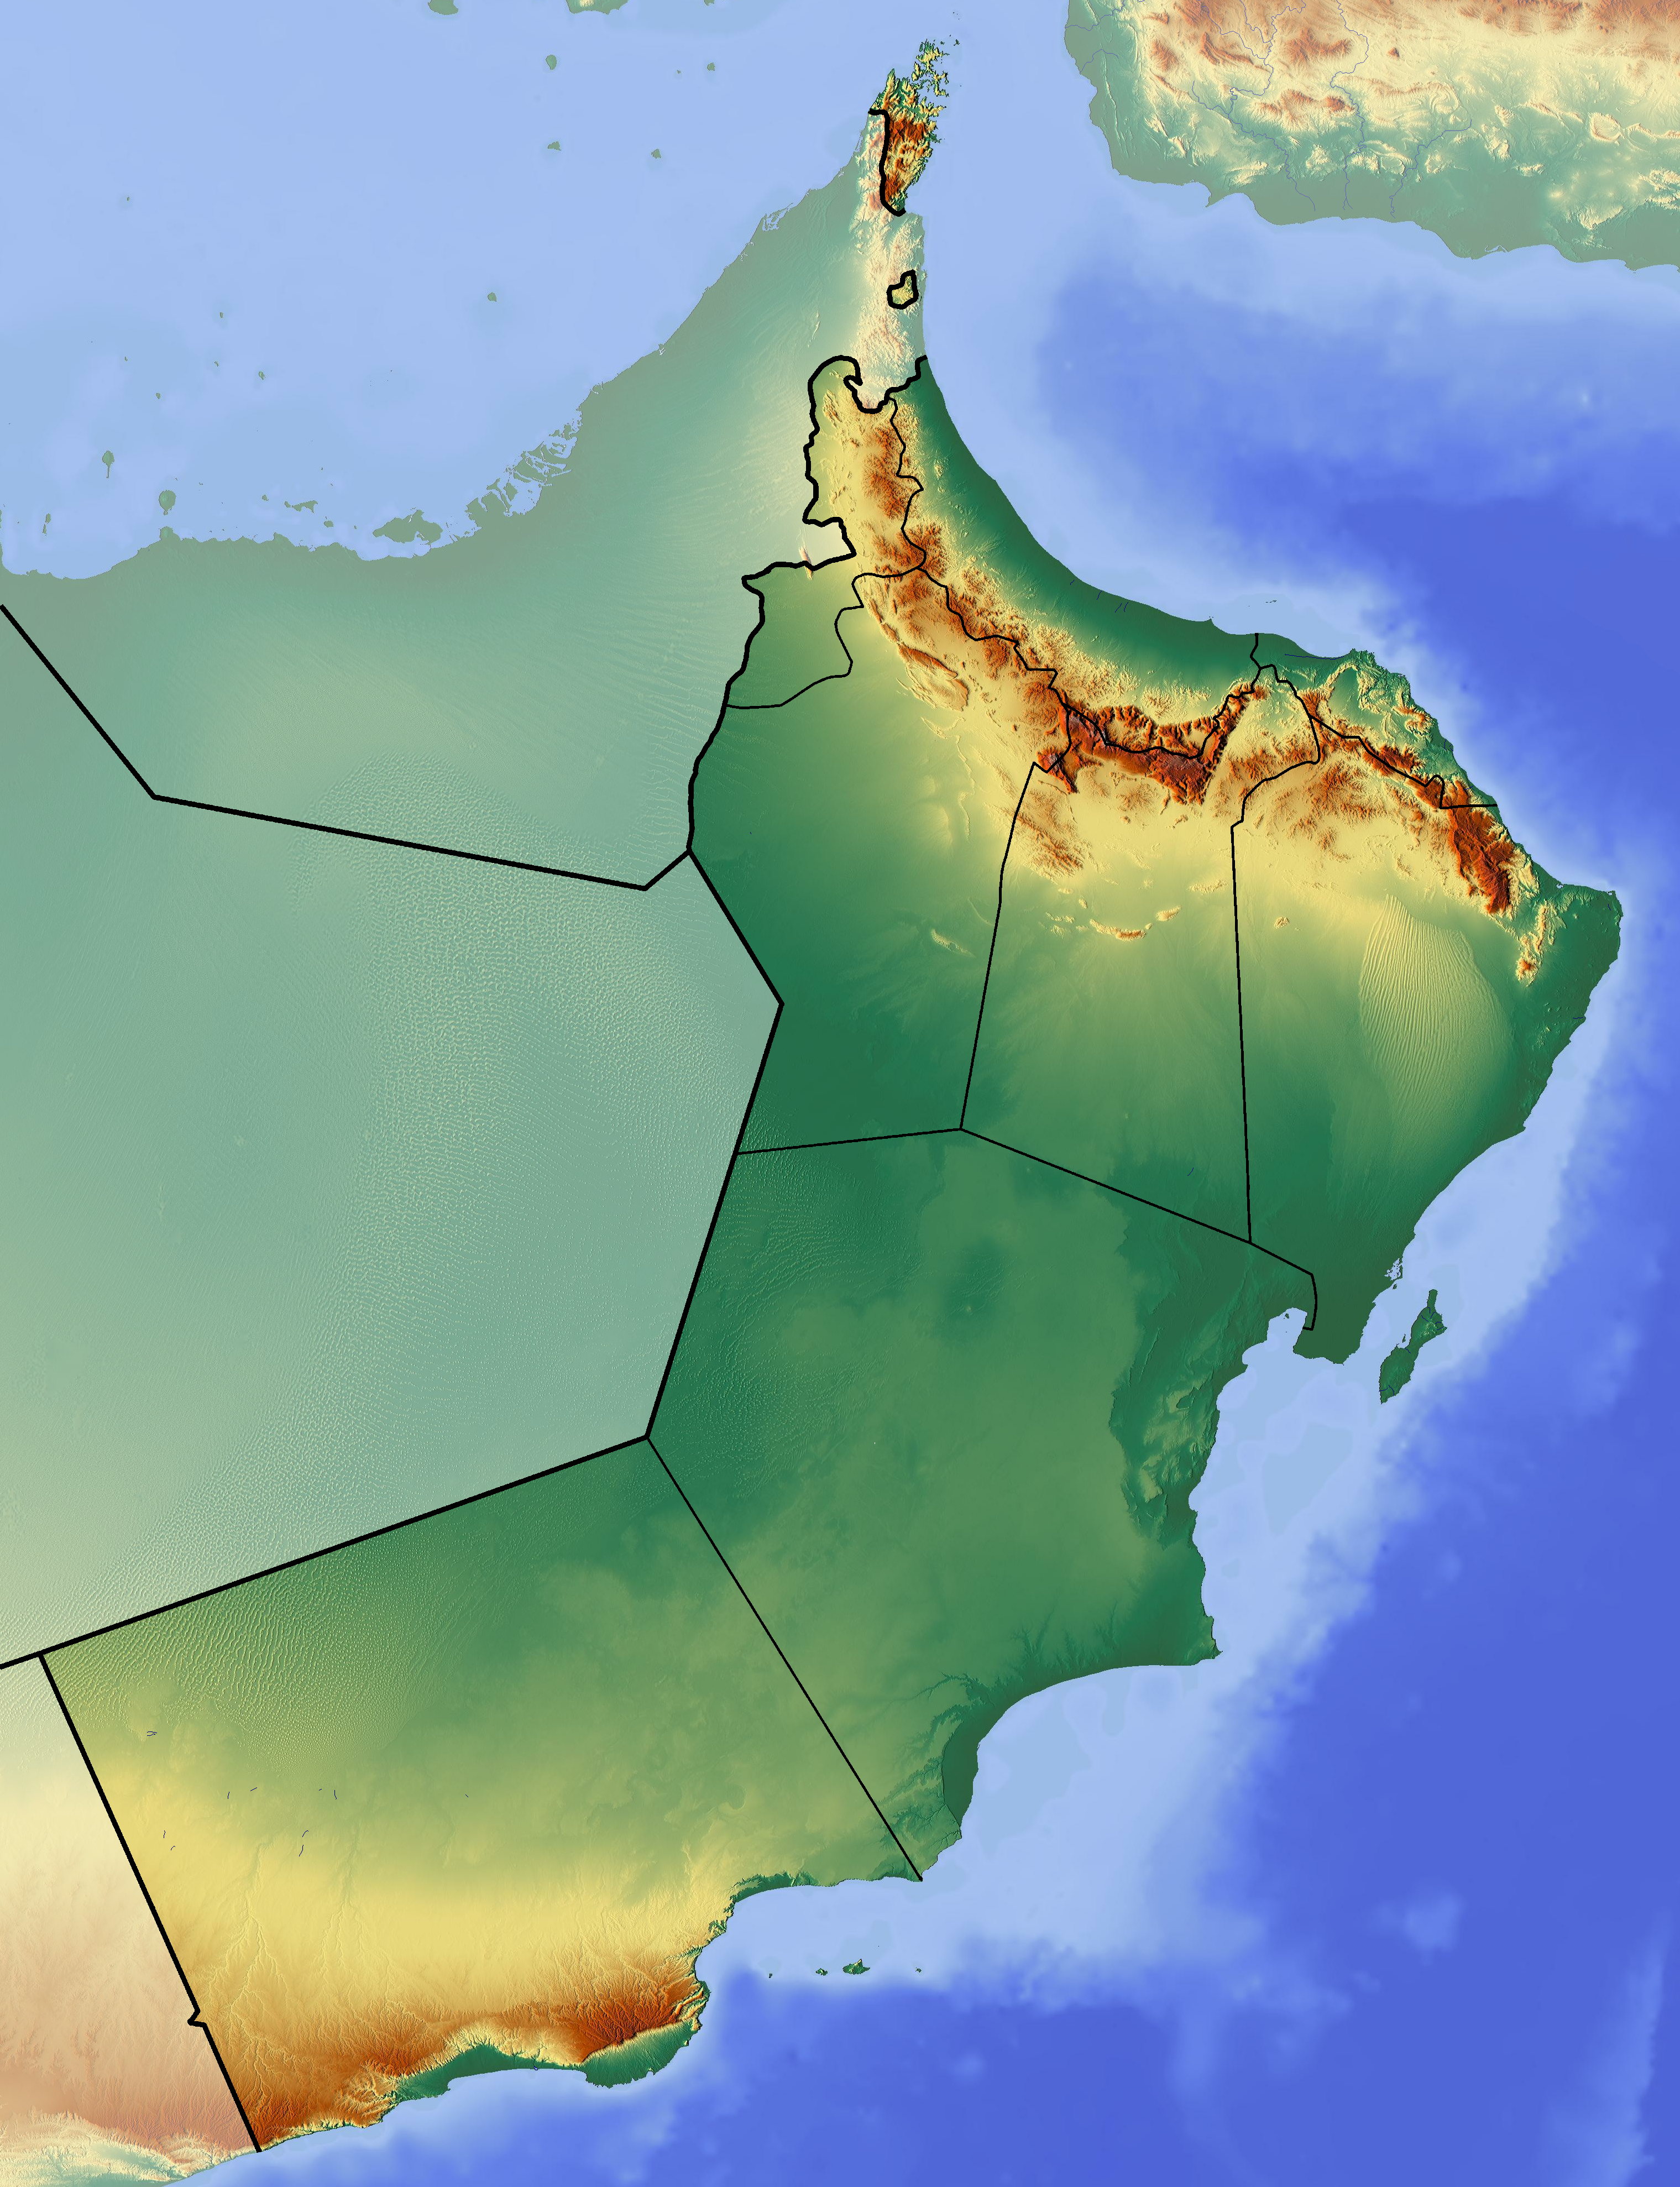 FileOman location map Topographicpng Wikimedia Commons